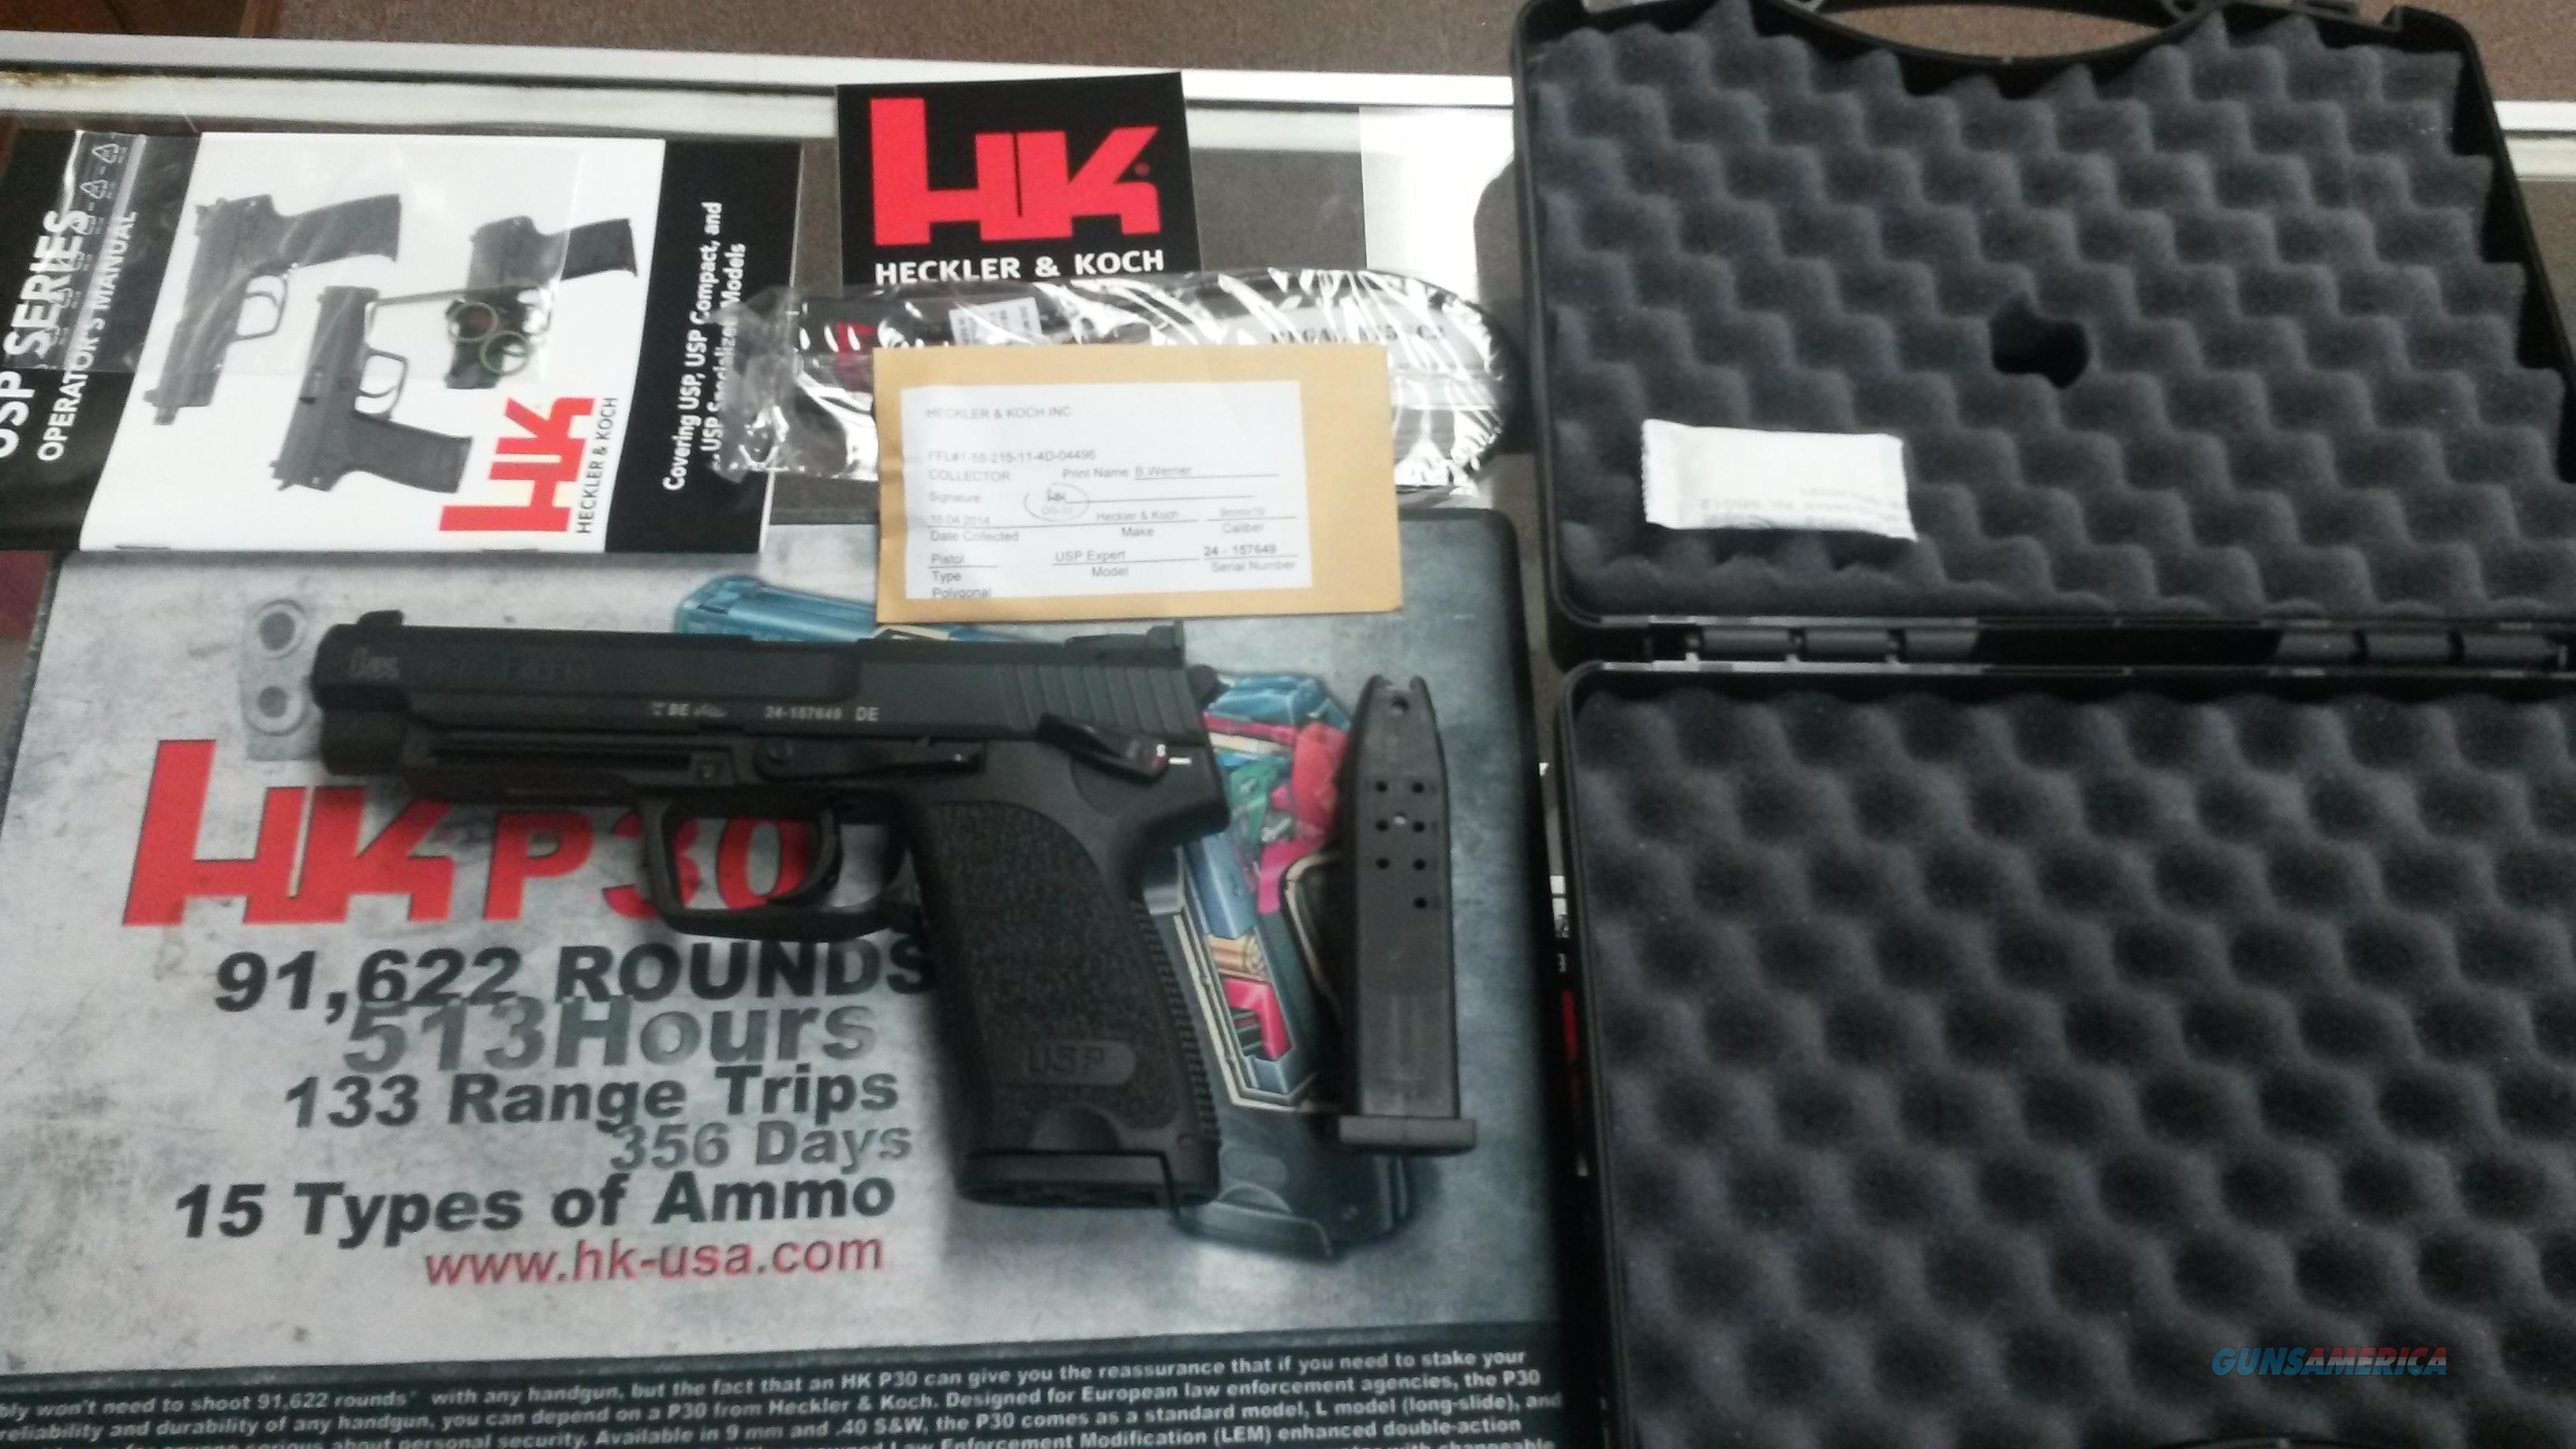 Heckler & Koch USP Expert 9mm w/out Jet Funnel, 2 Mags. $1100 or best offer!  Guns > Pistols > Heckler & Koch Pistols > Polymer Frame